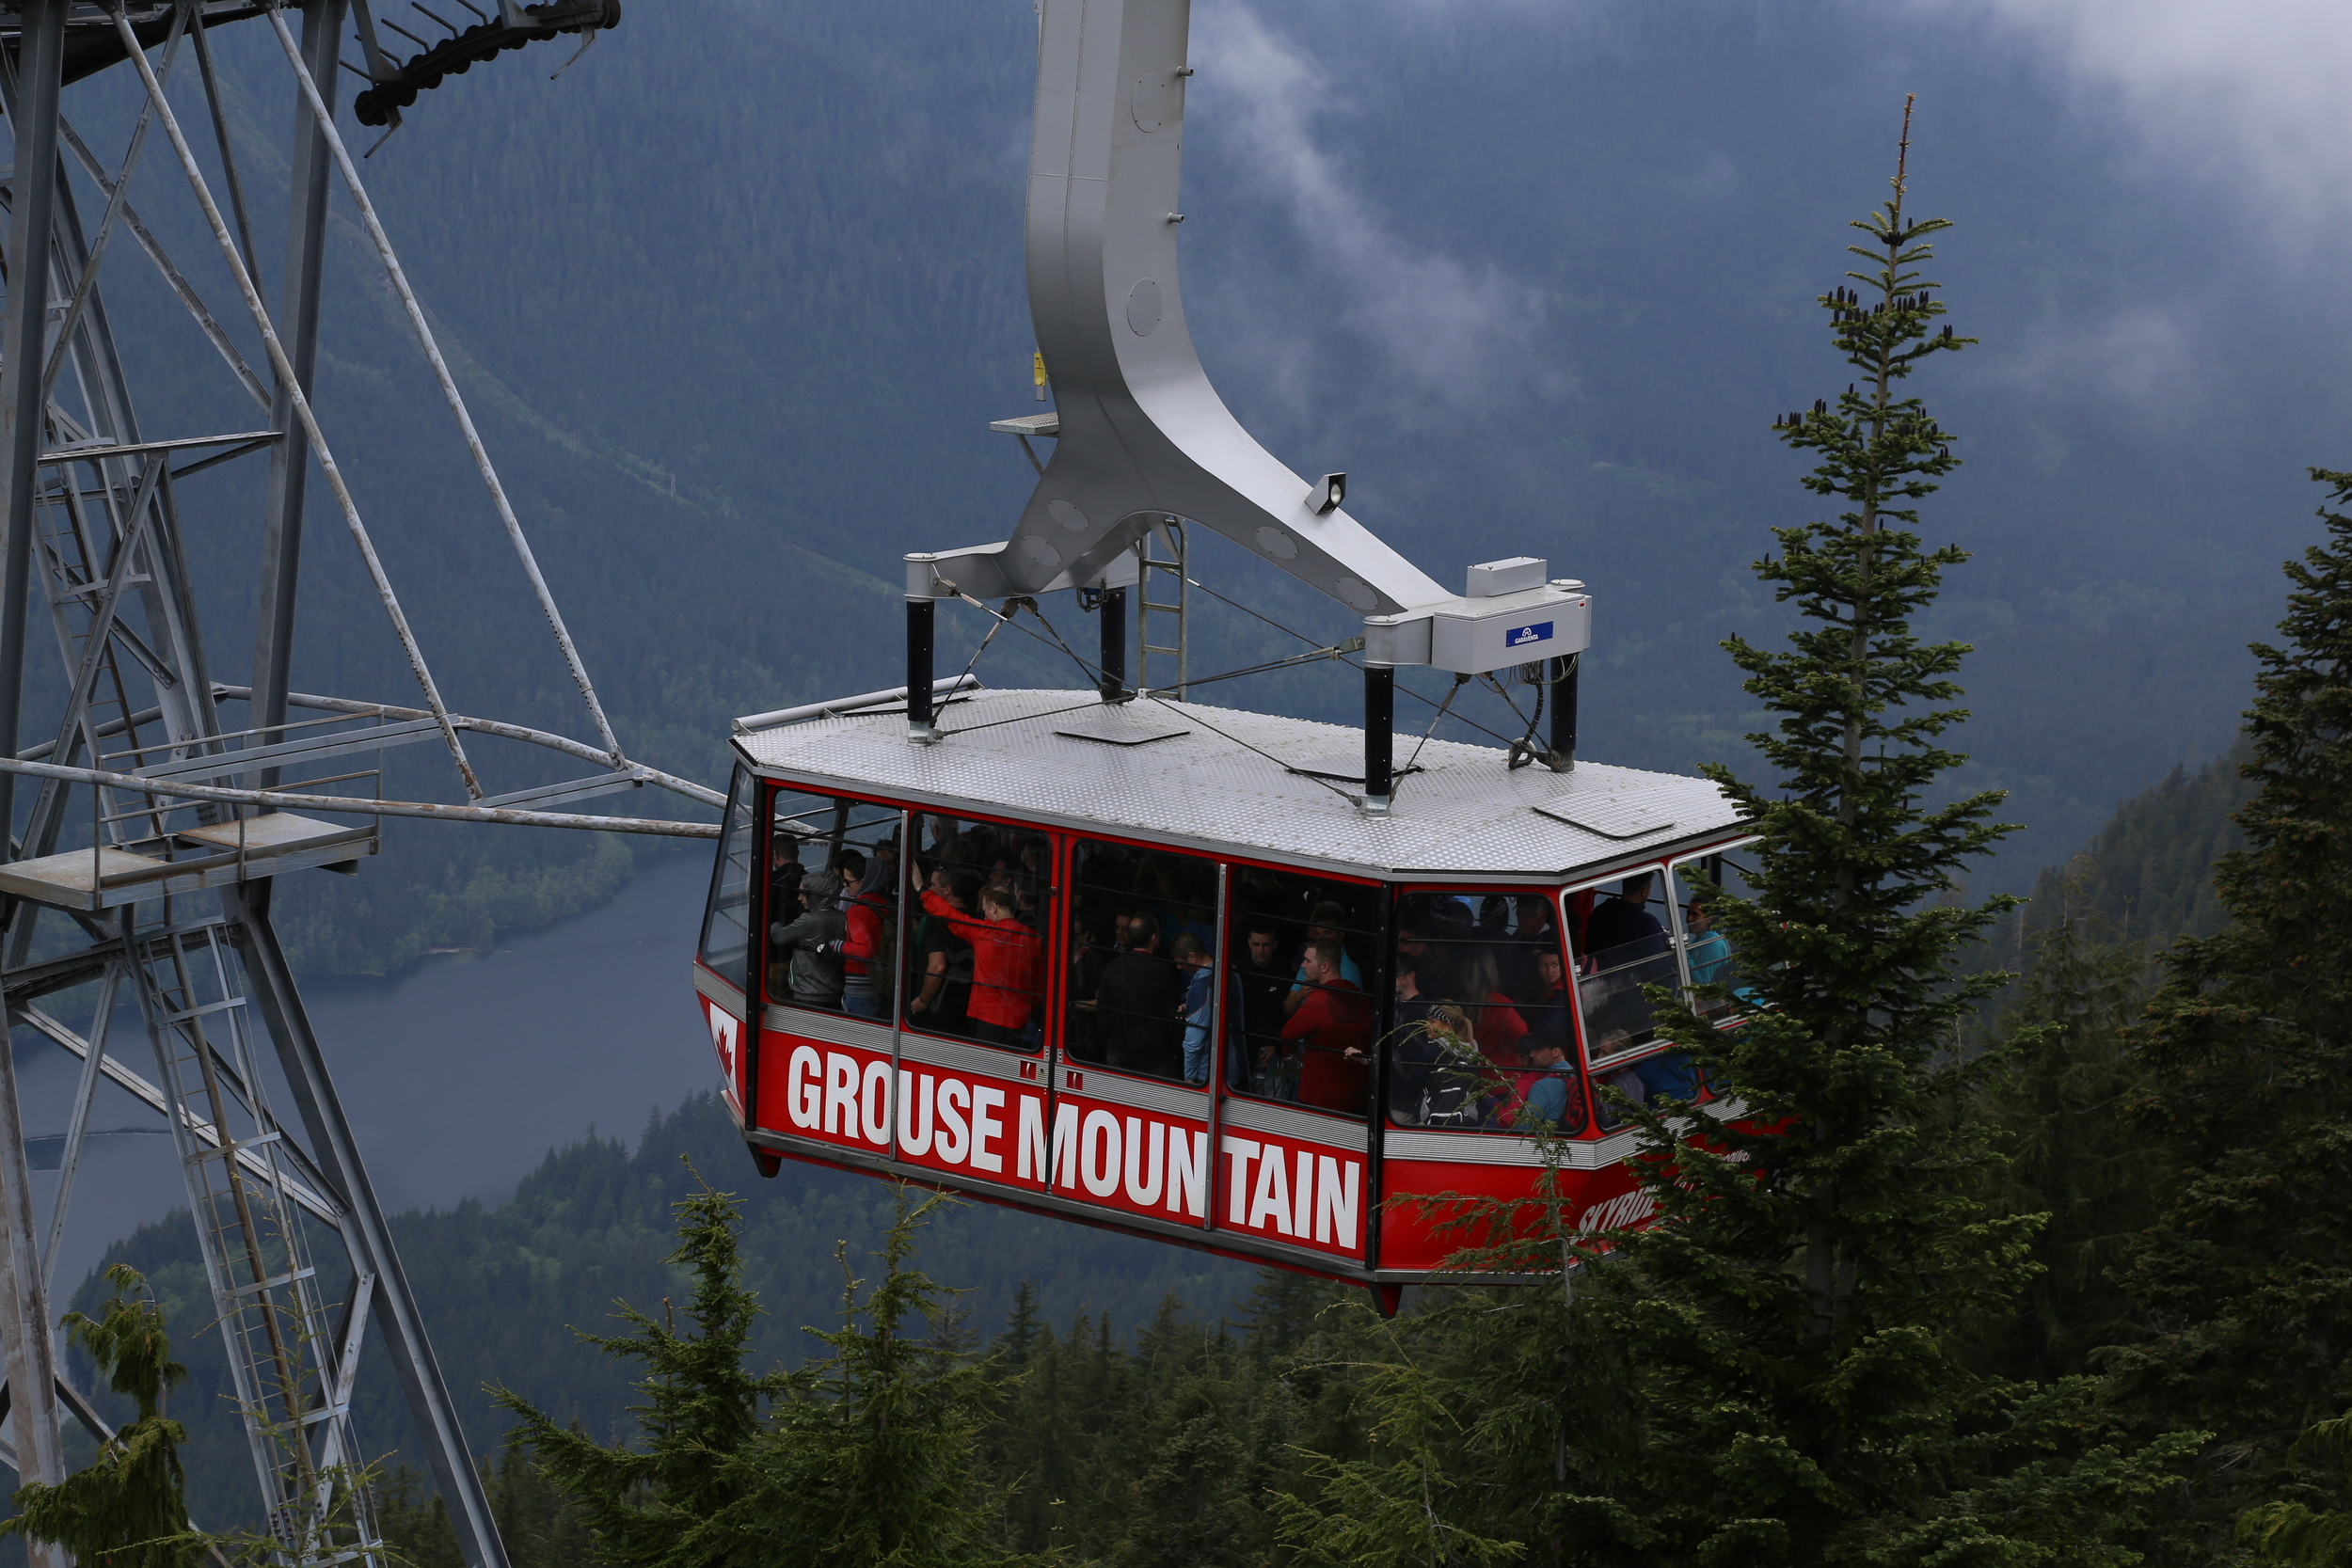 The best part is the gondola will take you down.